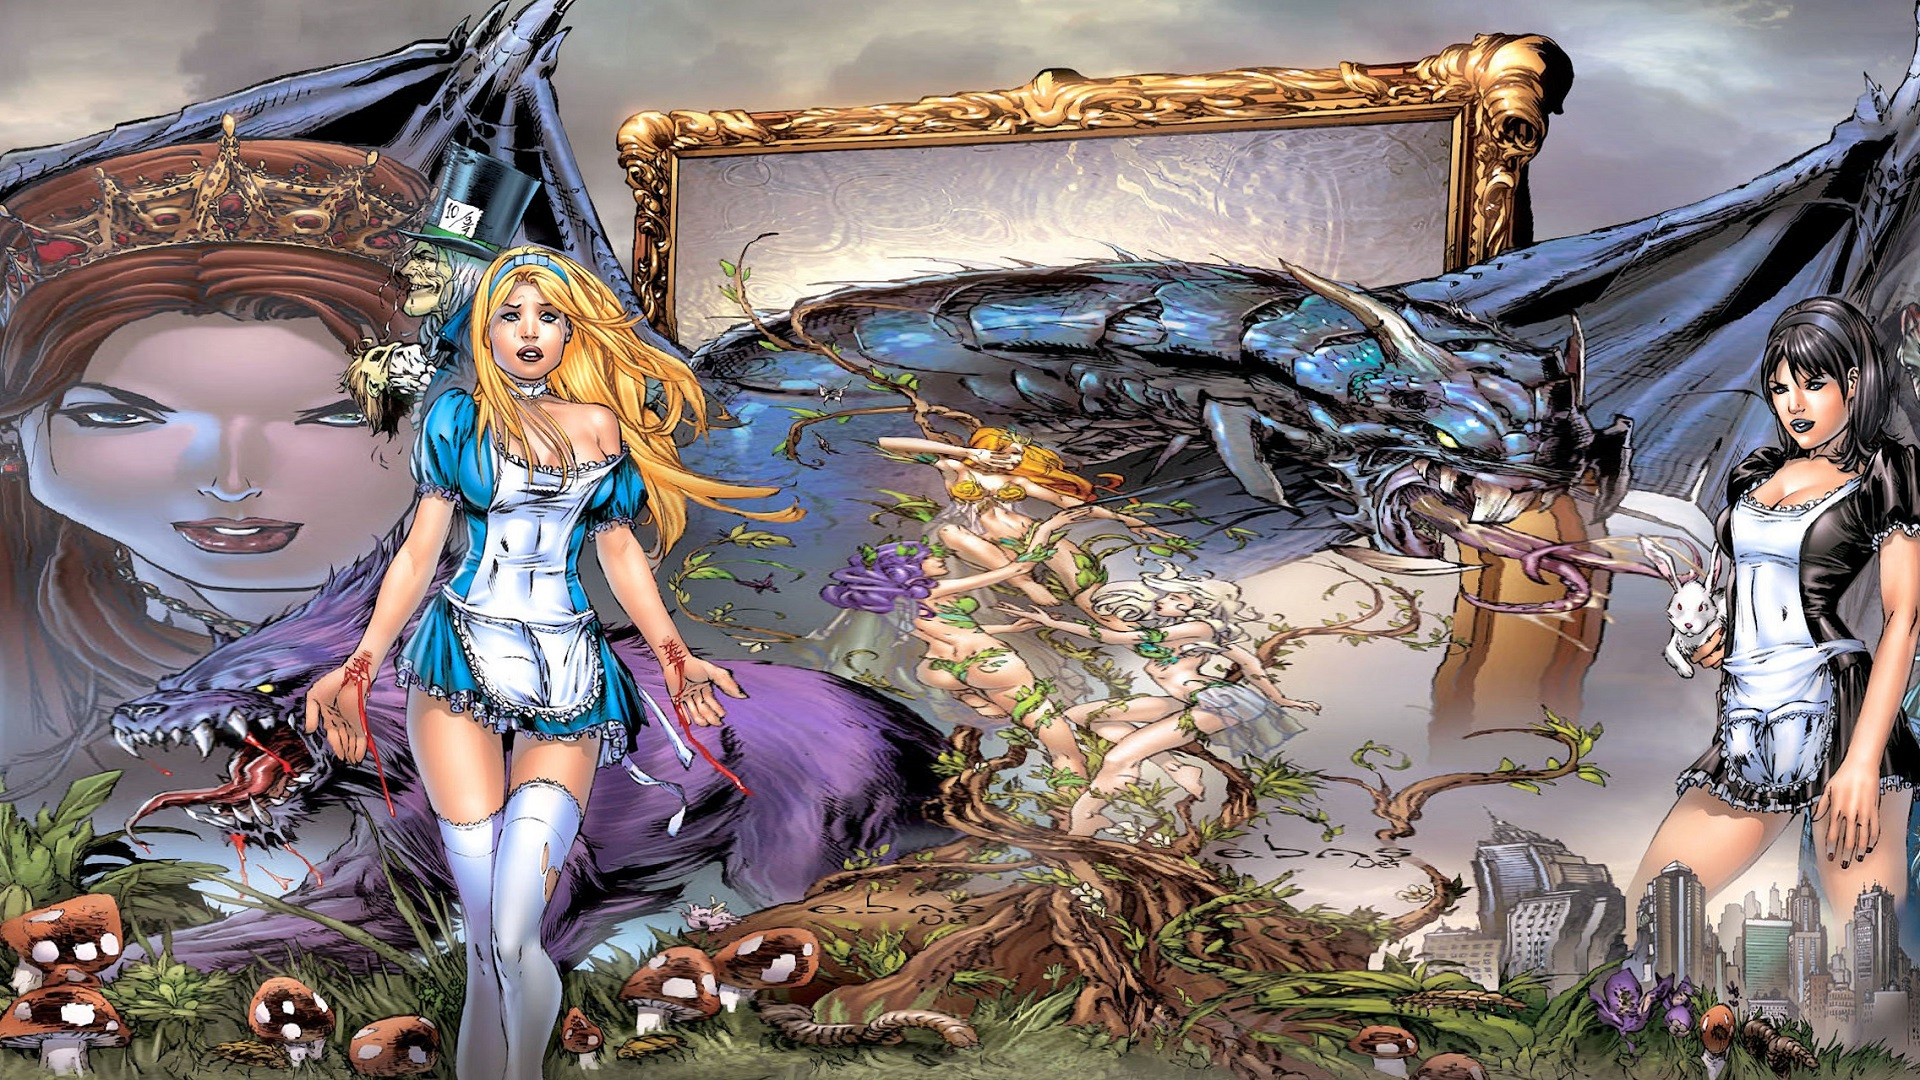 Grimm Fairy Tales Full HD Wallpaper and Background Image 1920x1080